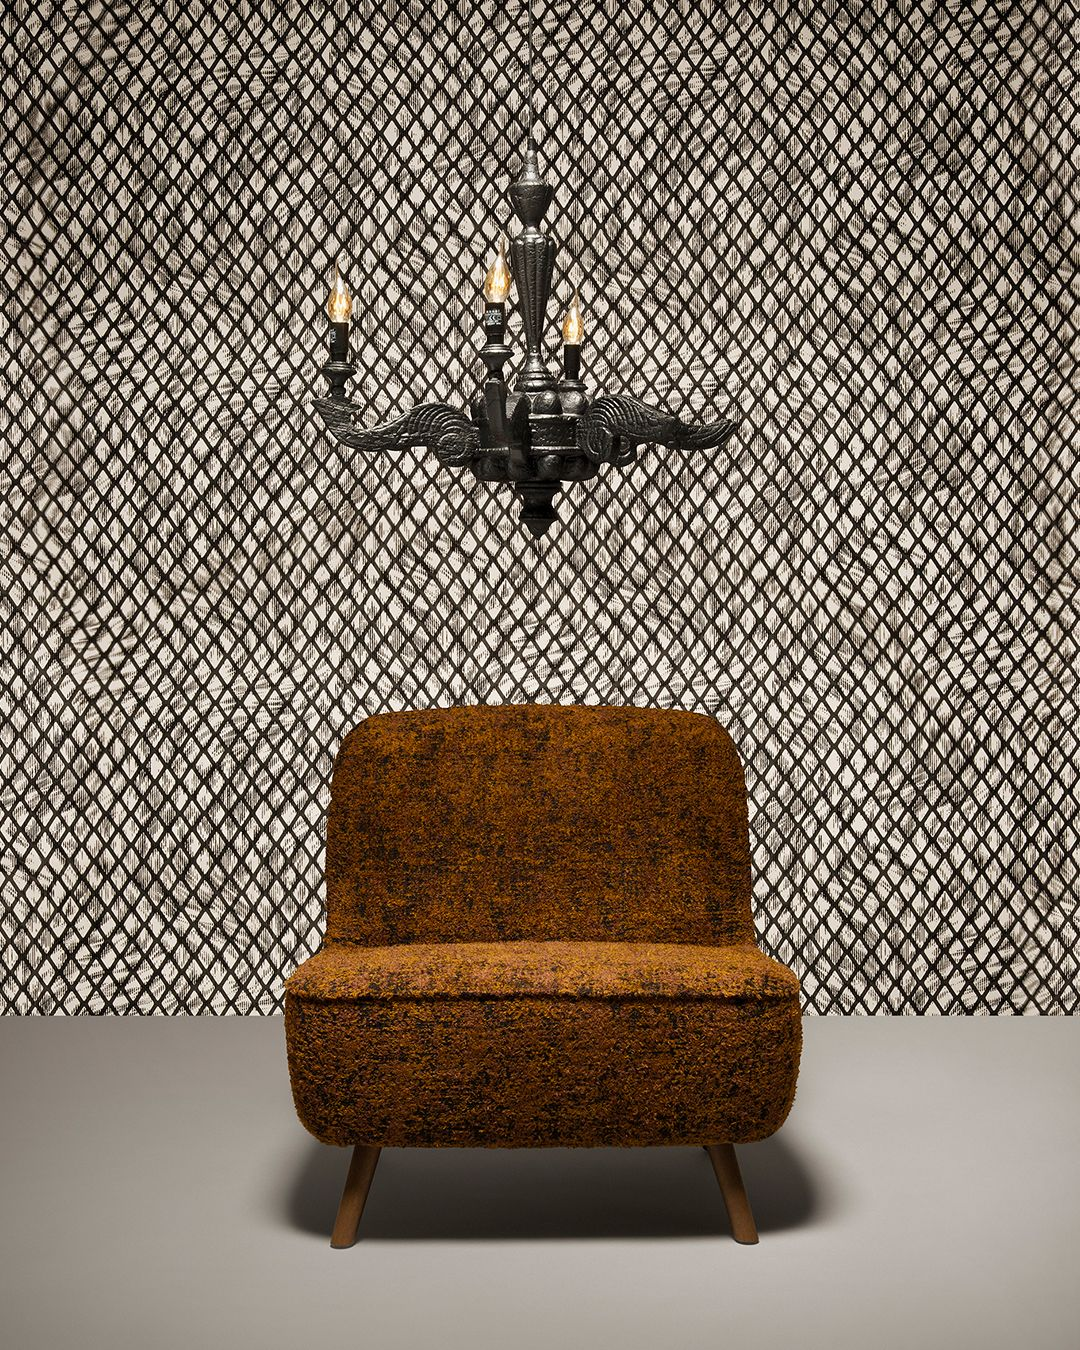 Moooi Wallcovering Aristo Quagga Printed with a finish, inspired by the delicate features and royal appearance of the Aristo Quagga.